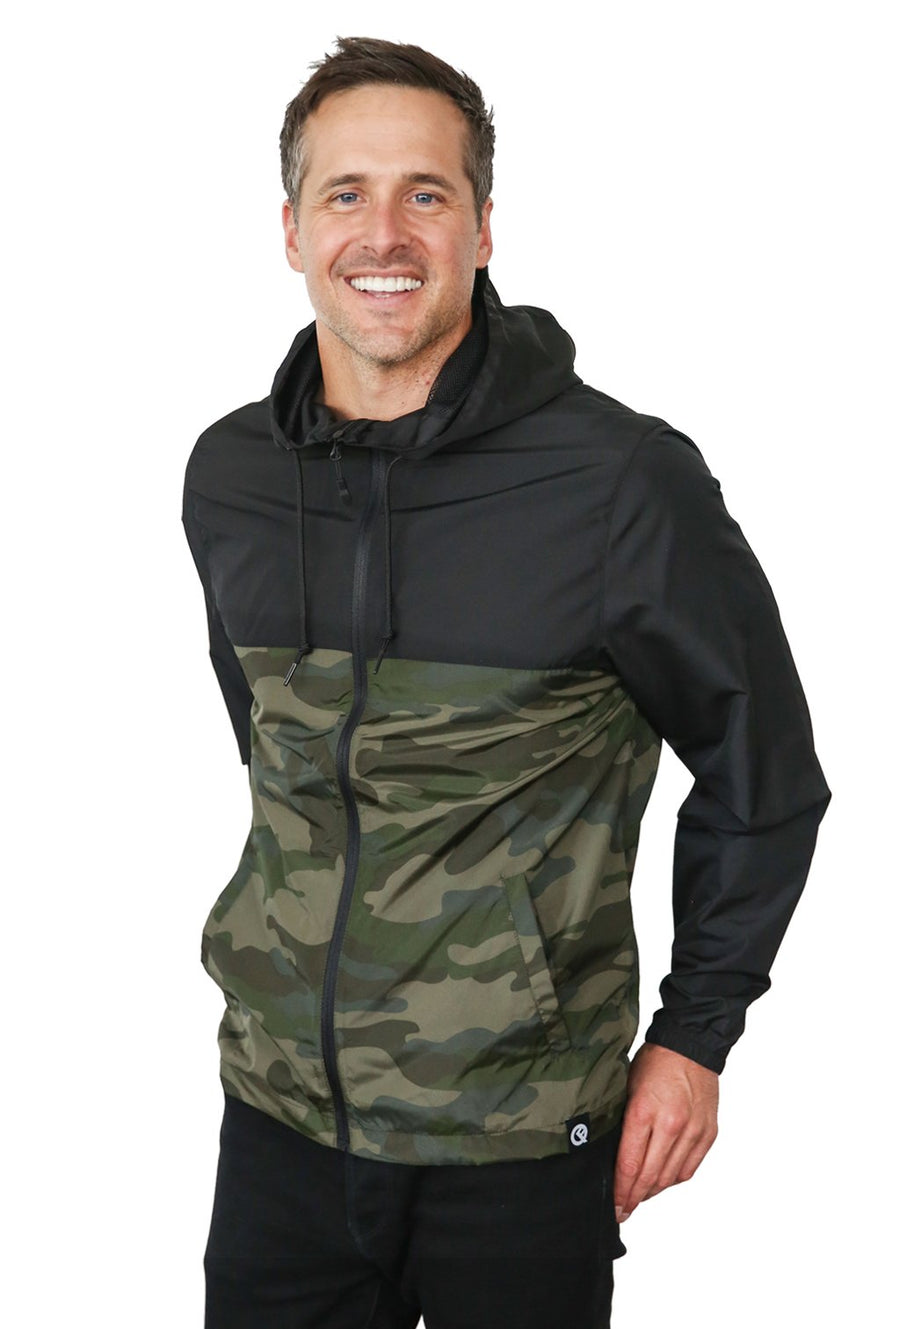 Dryflip Windbreaker (Black/Camo) Best Sellers